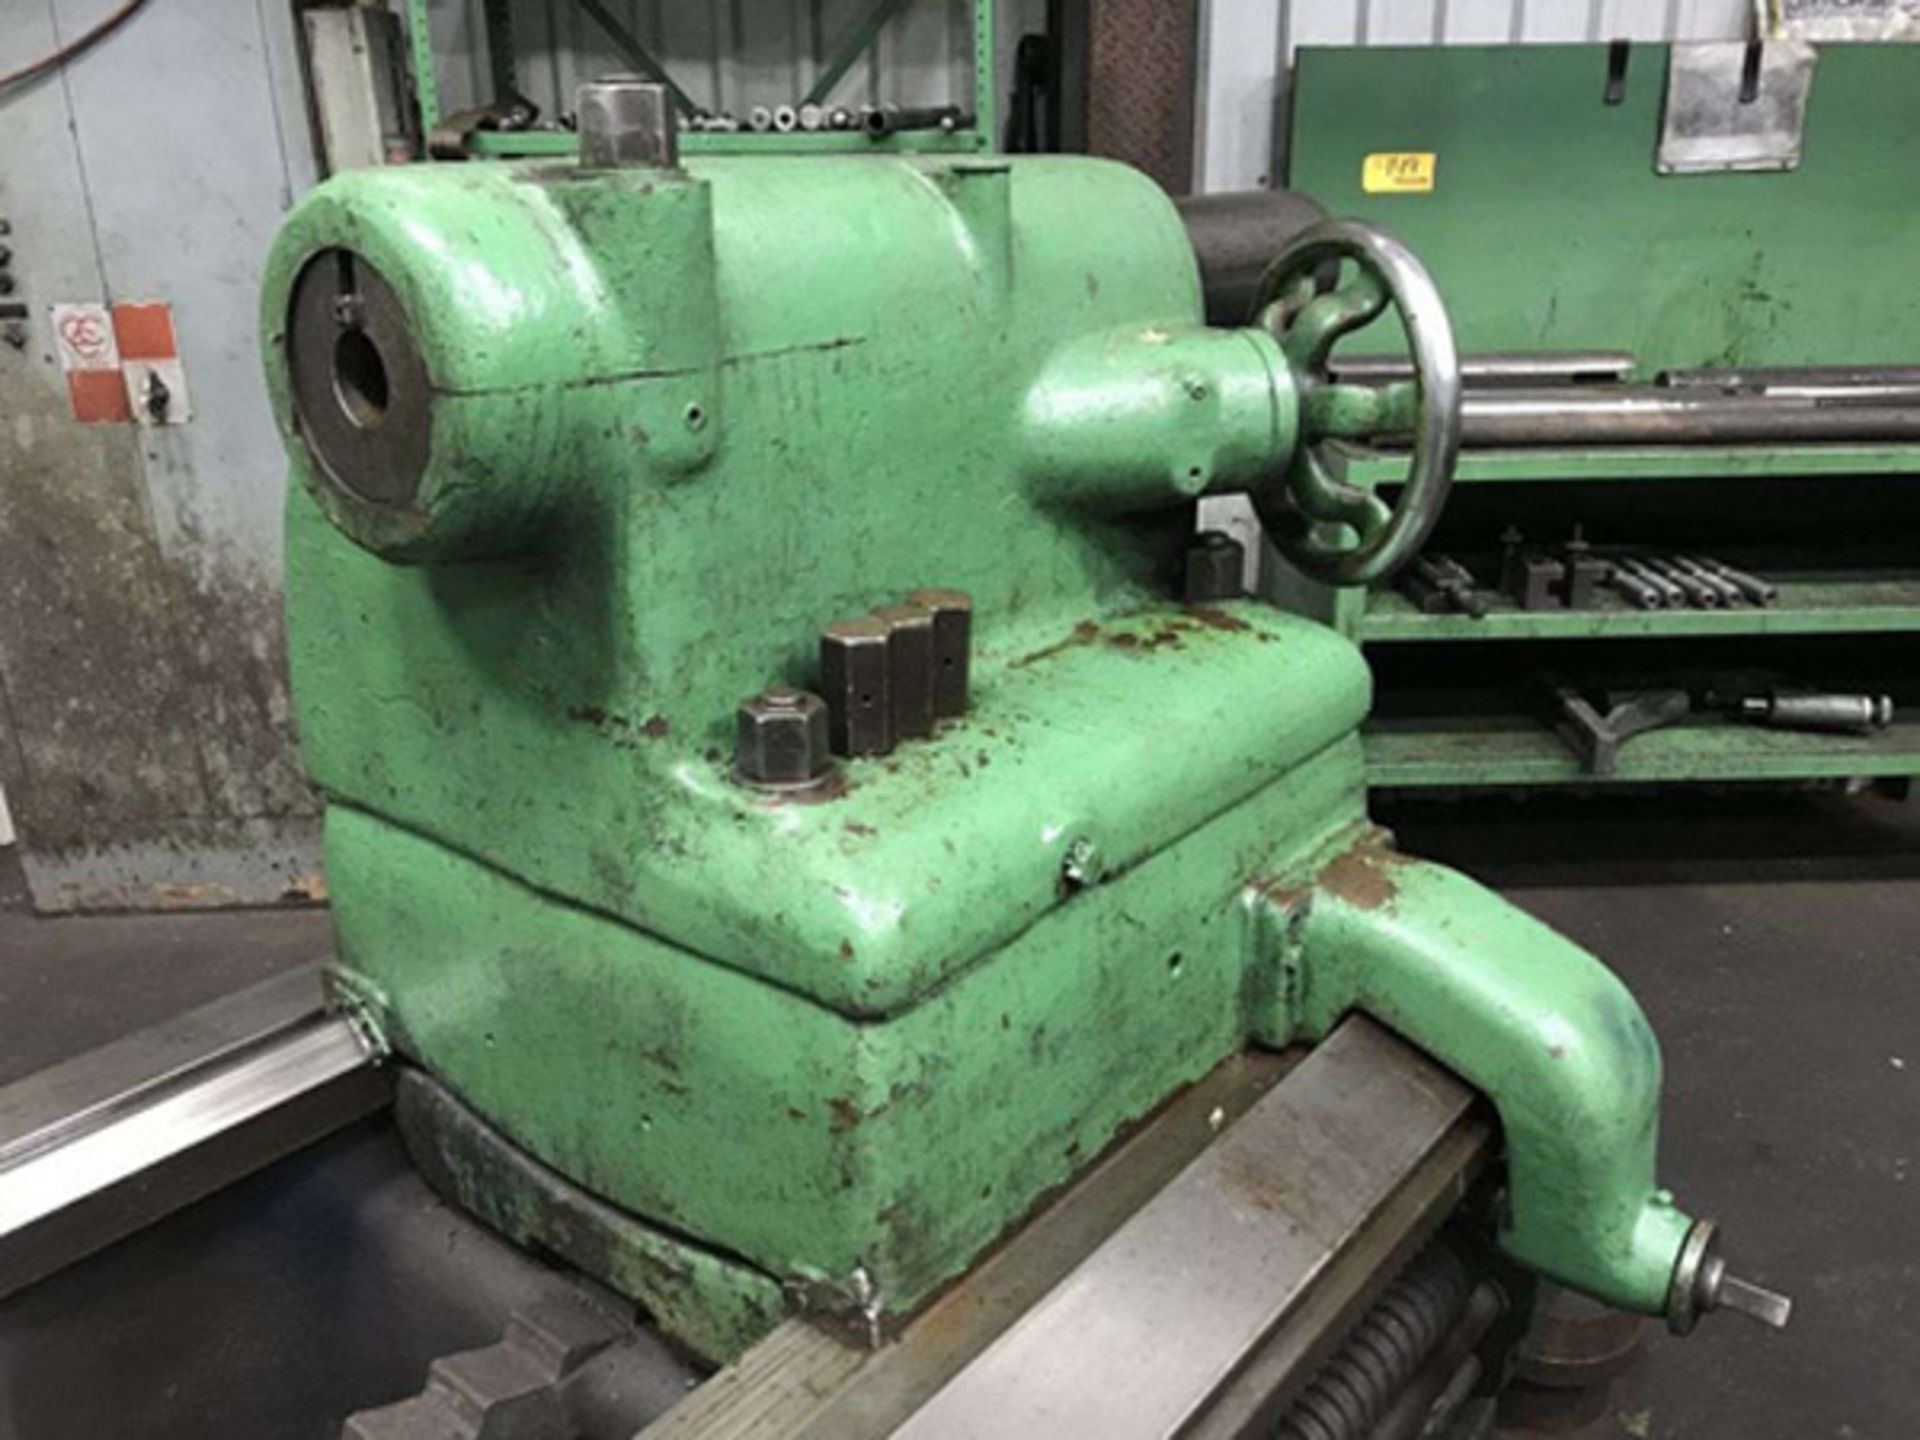 "Lot 15 - Leblond Heavy Duty Engine Lathe | 60"" x 100"", Mdl: #50, S/N: NR153 - 7992P"